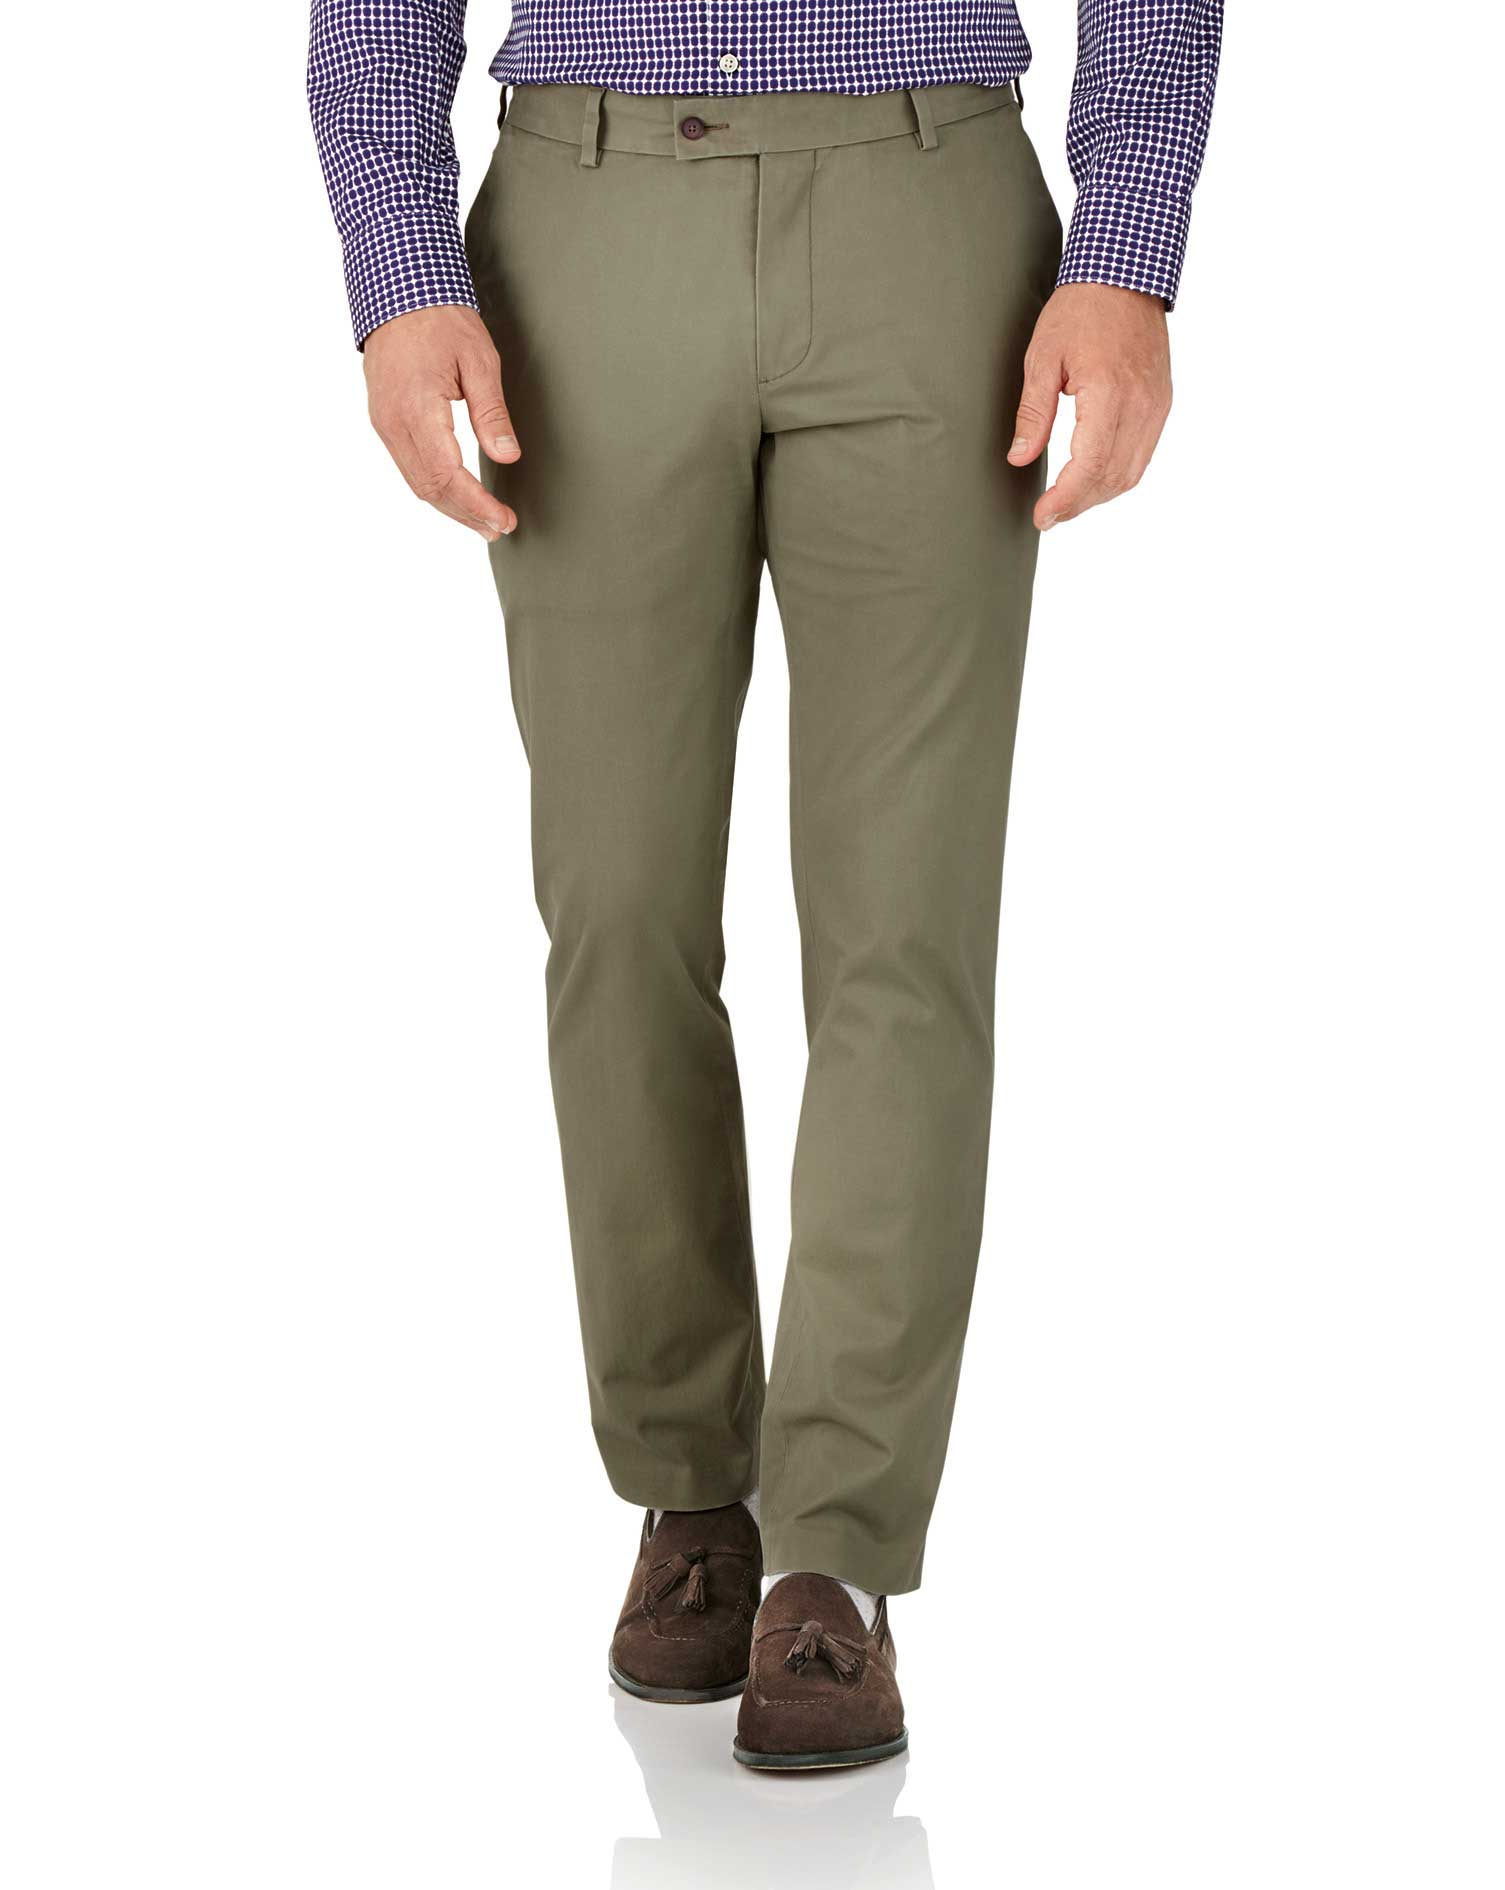 Khaki Slim Fit Stretch Cotton Chino Trousers Size W36 L30 by Charles Tyrwhitt